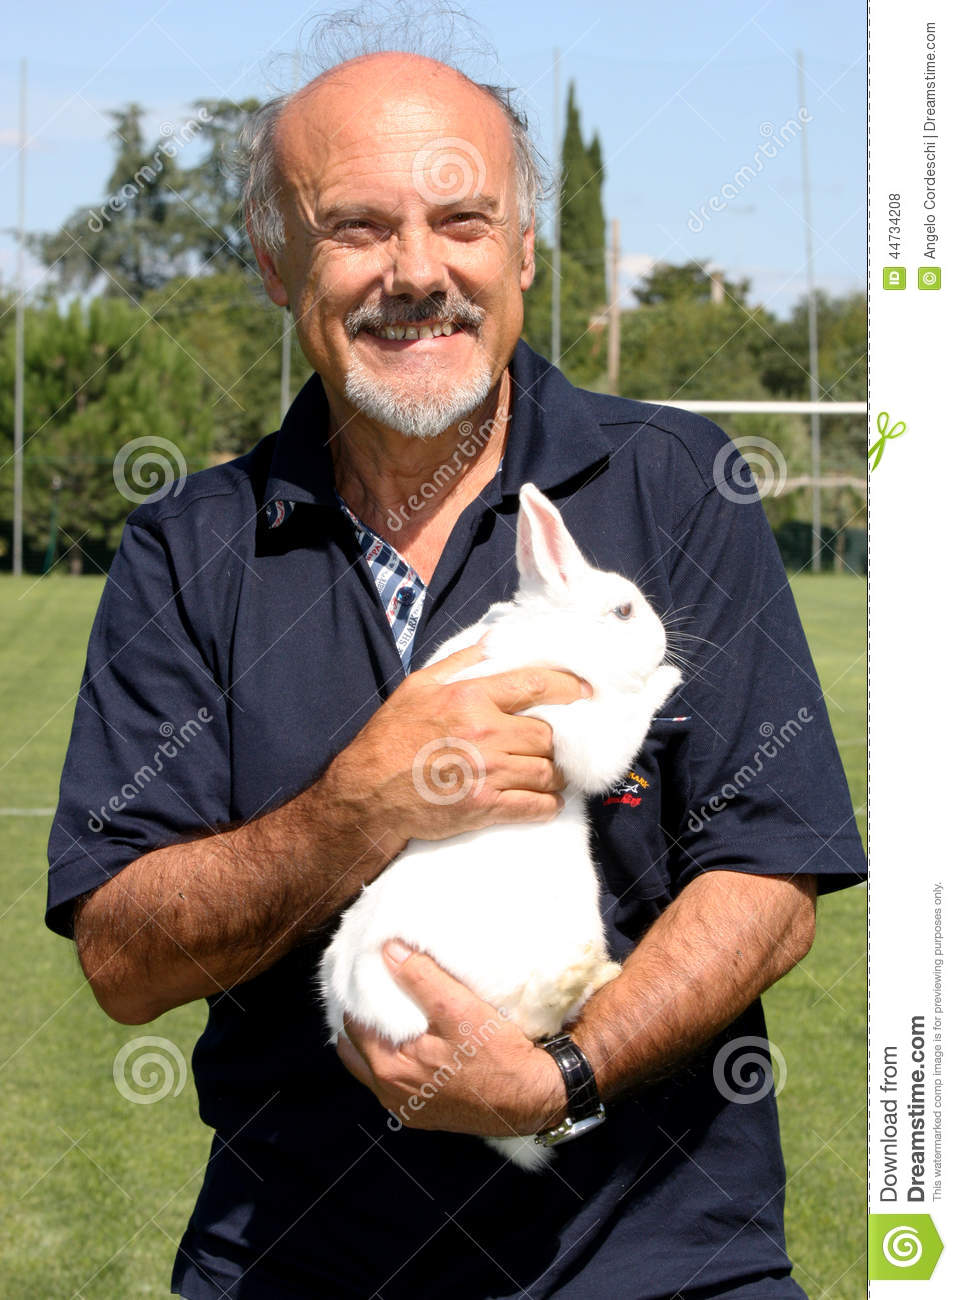 The director Luciano Capponi with a rabbit in her arms